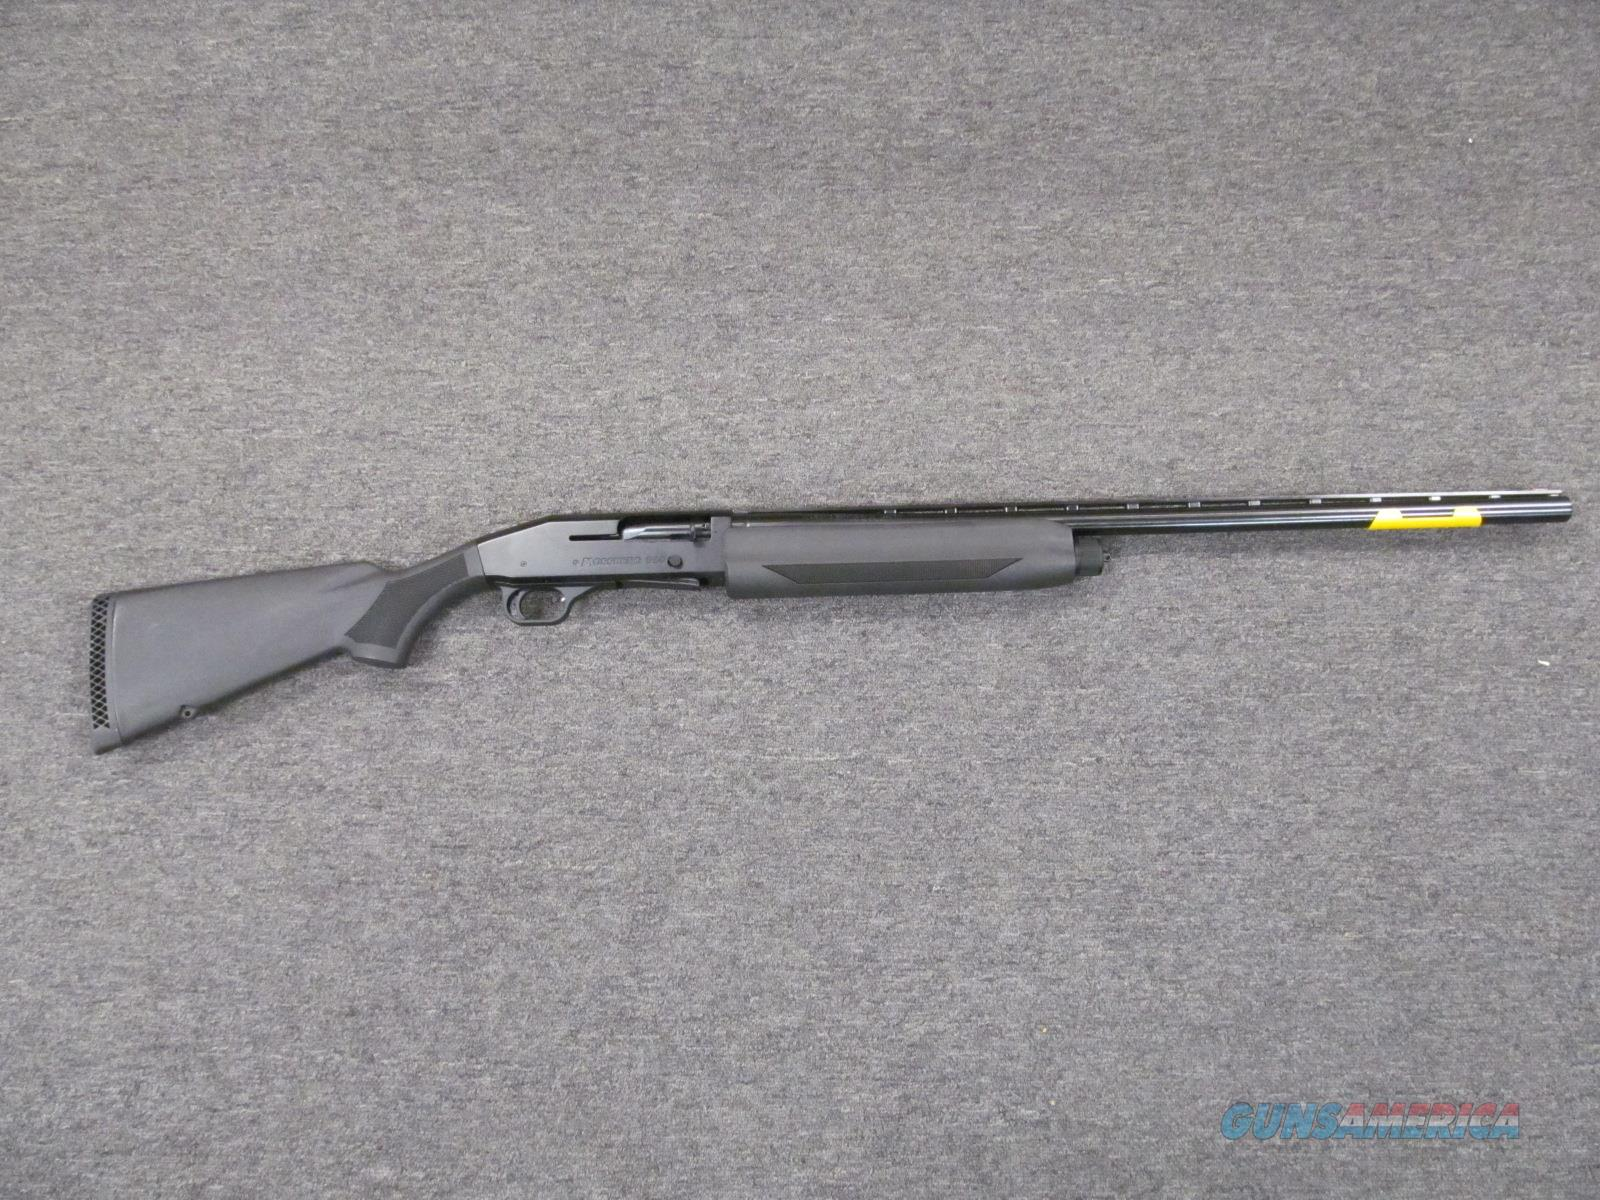 Mossberg 930 Combo (85325) for sale